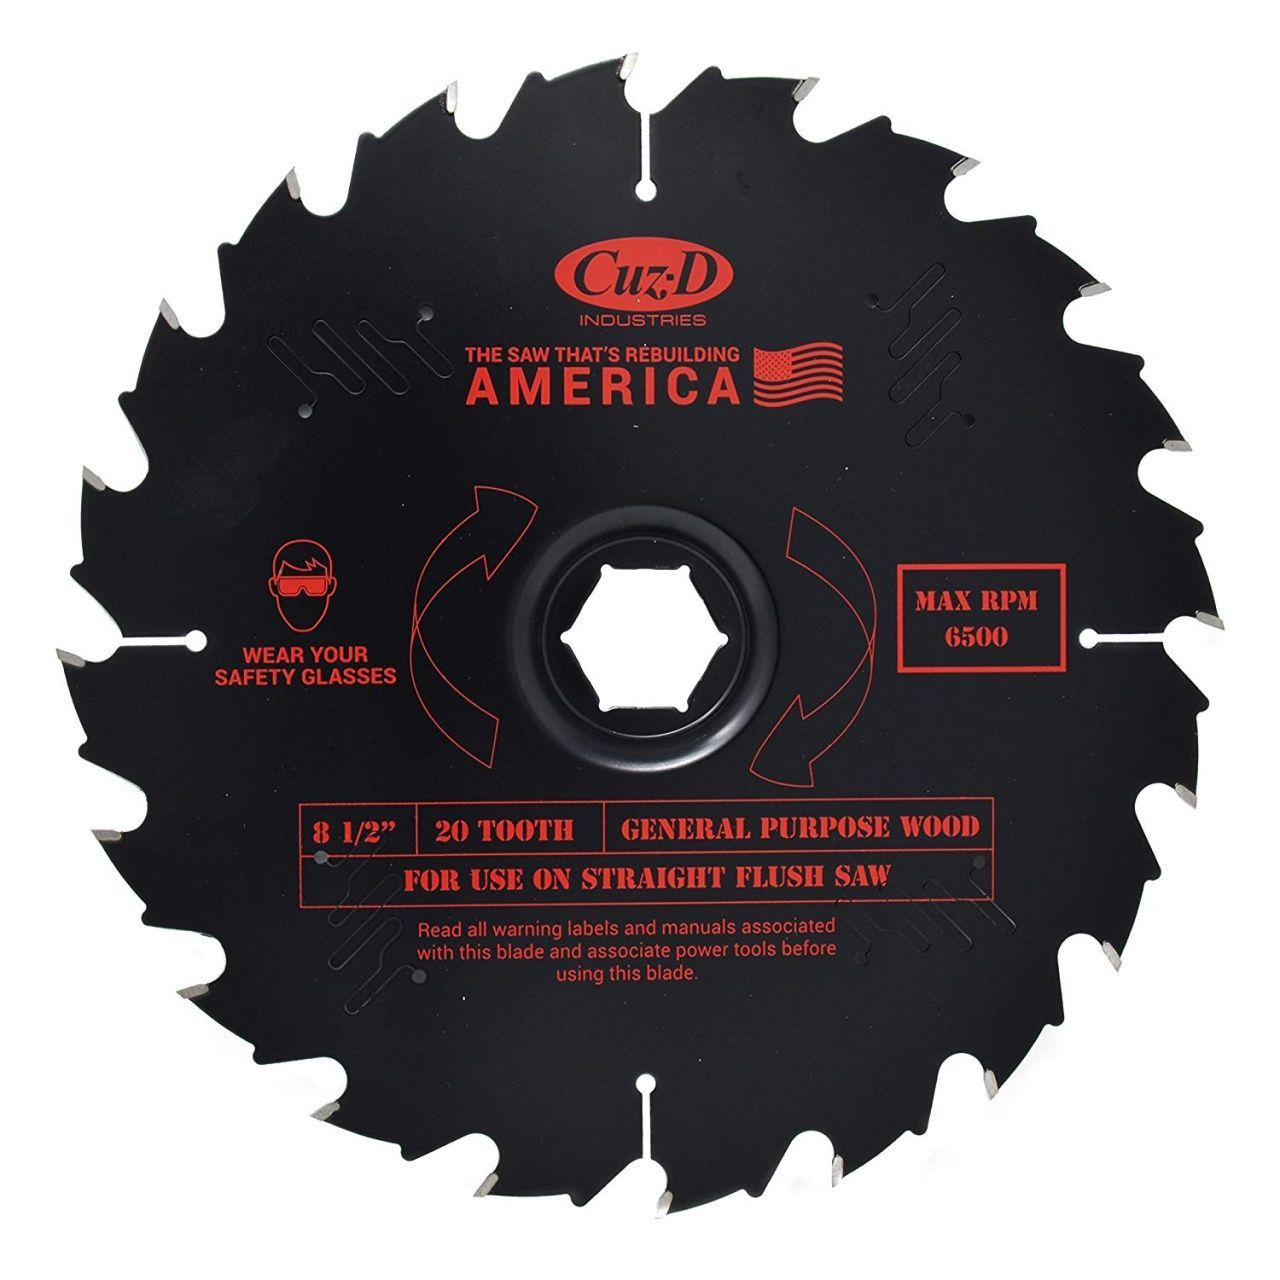 Circular Saw Blade For Laminate Flooring Best Picture For Laminate Flooring Home Depot For Your Taste You Are Looking For Something And It Is Going To Tell 2020